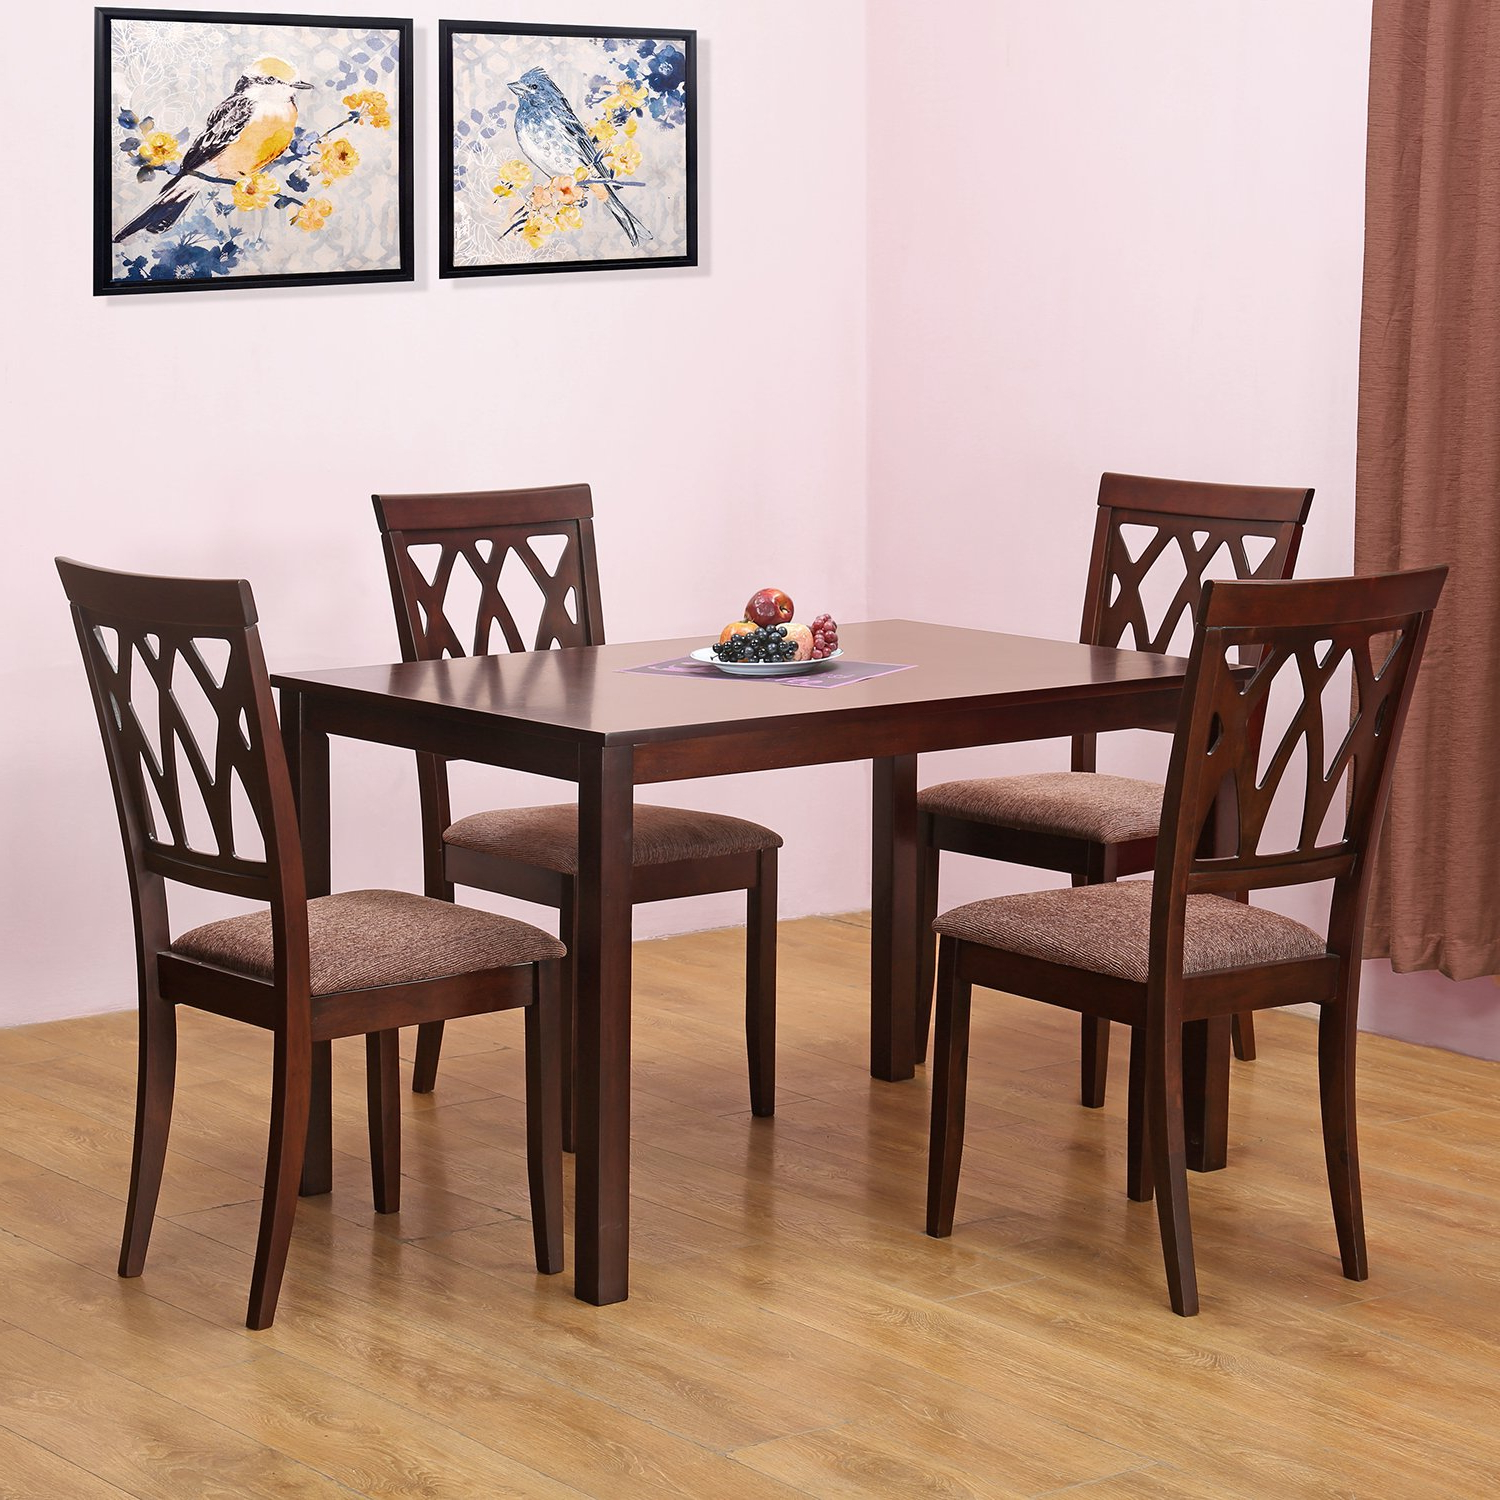 Homenilkamal Peak Four Seater Dining Table Set (Cappucino Throughout Well Known Frida 3 Piece Dining Table Sets (Gallery 16 of 25)